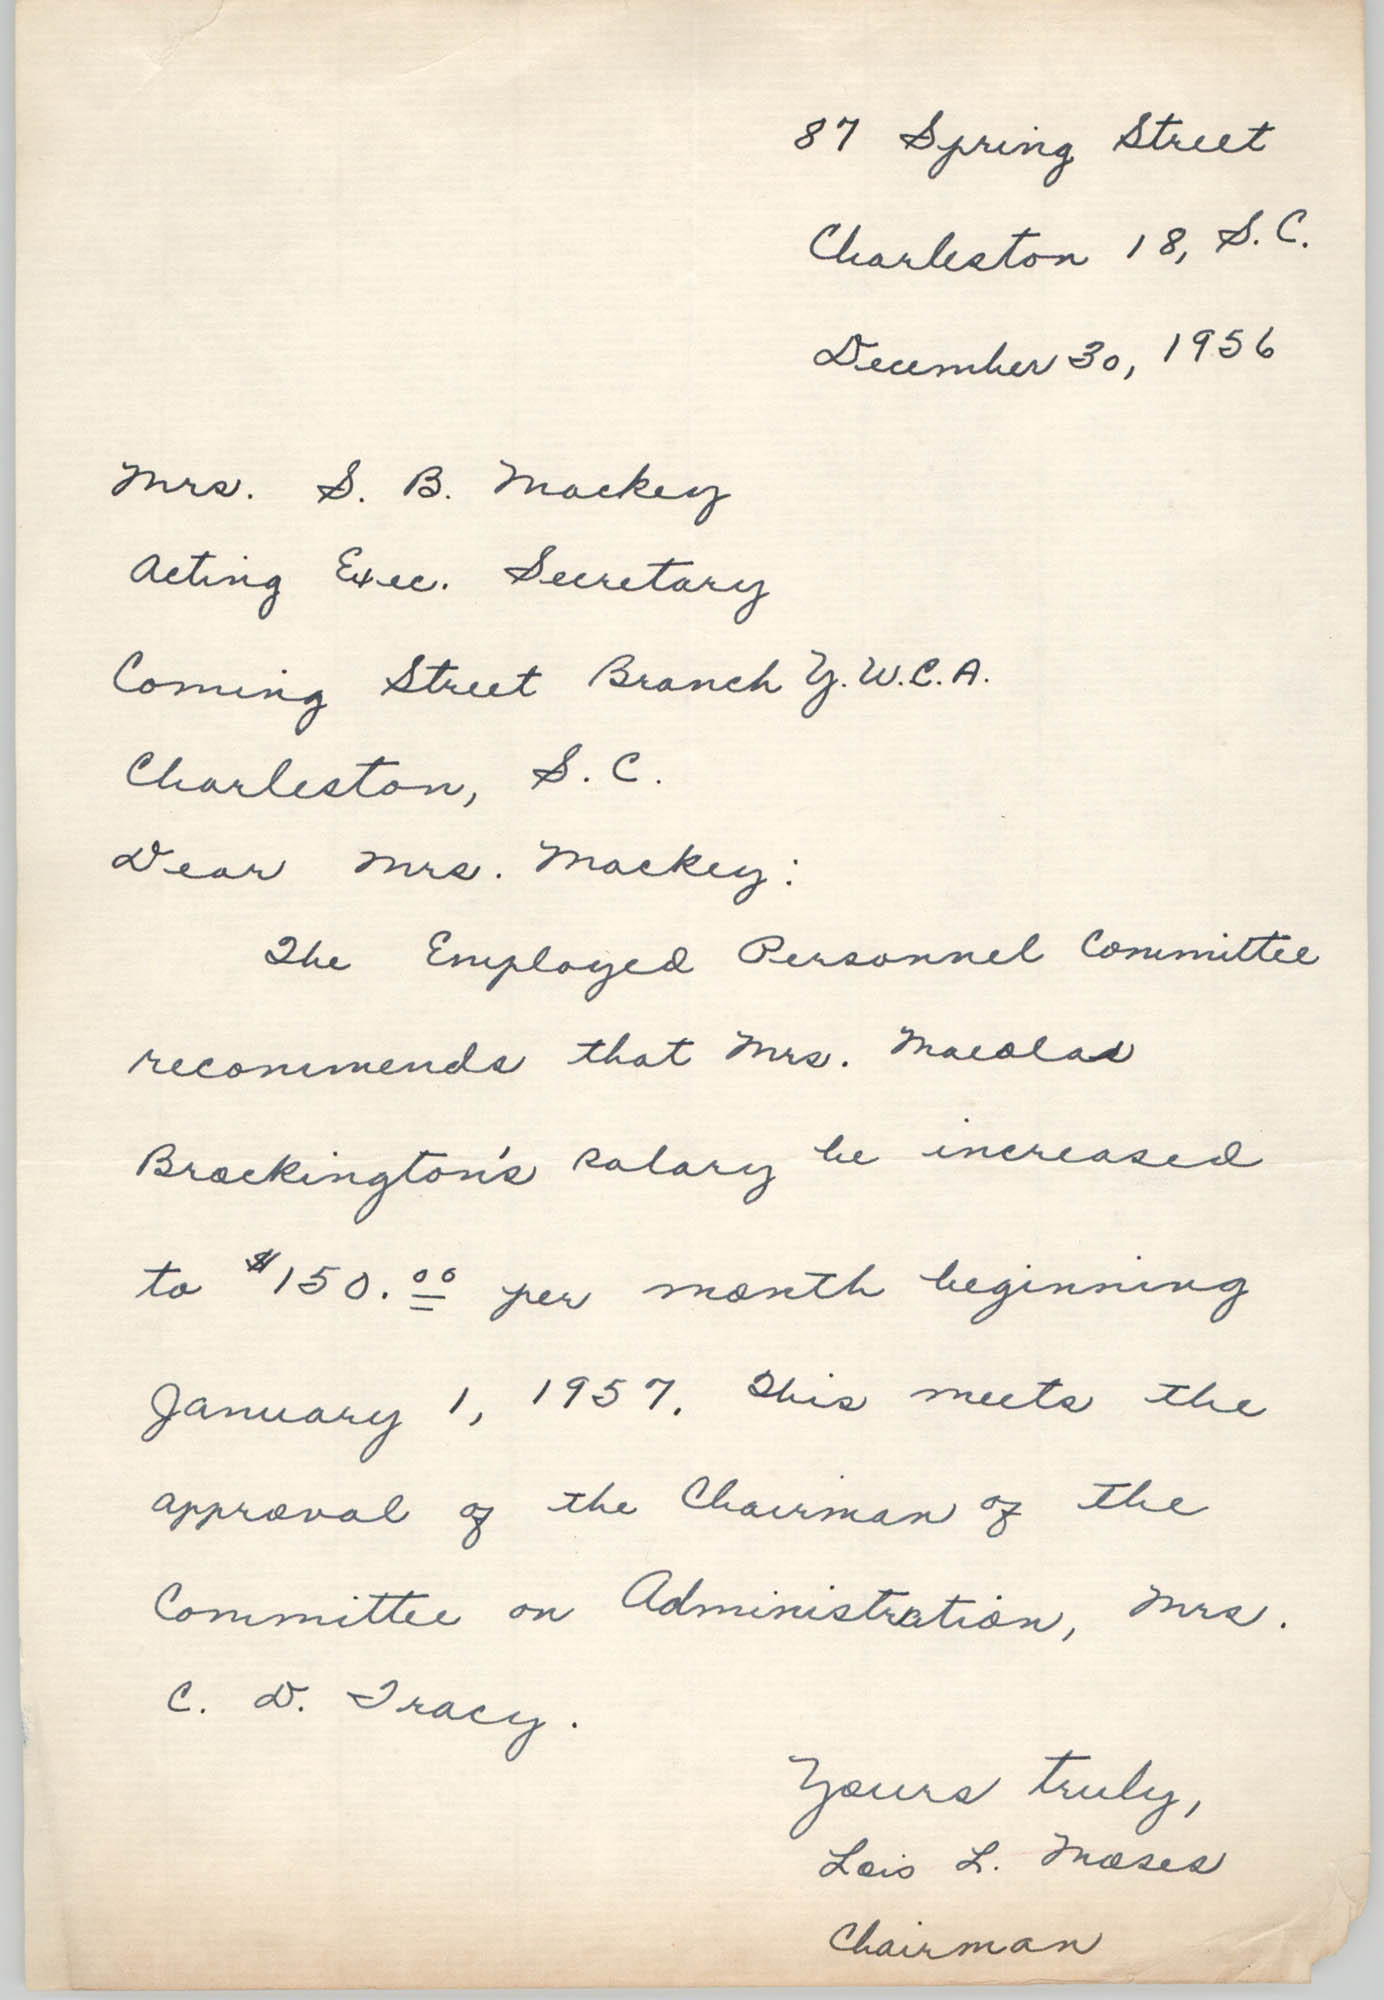 Letter from Lois L. Moses to S. B. Mackey, December 30, 1956